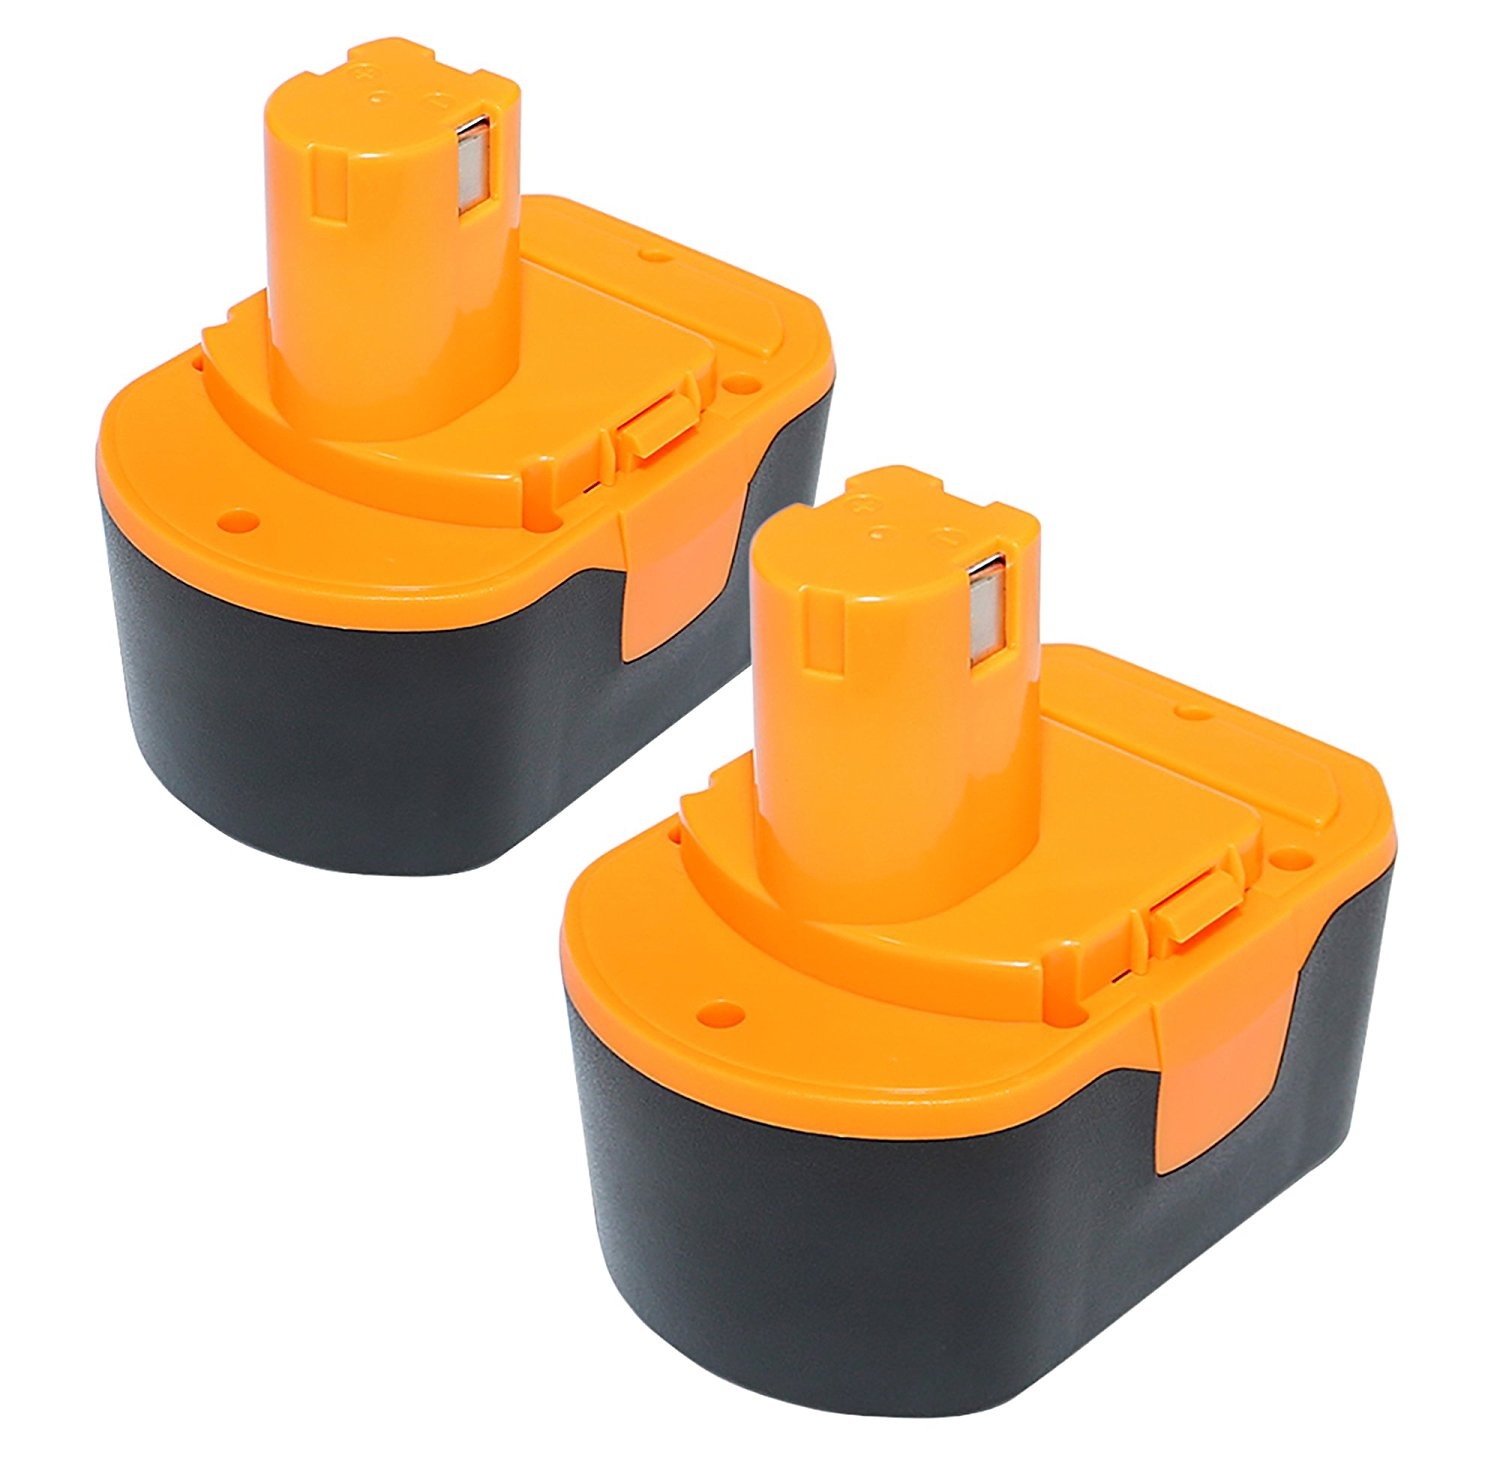 efluky 2Pack 3.0Ah 14.4V Ni-Cd Replacement Power Tool Battery for Ryobi 130224010 130224011 130281002 1314702 1400144 1400655 1400656 1400671 4400011